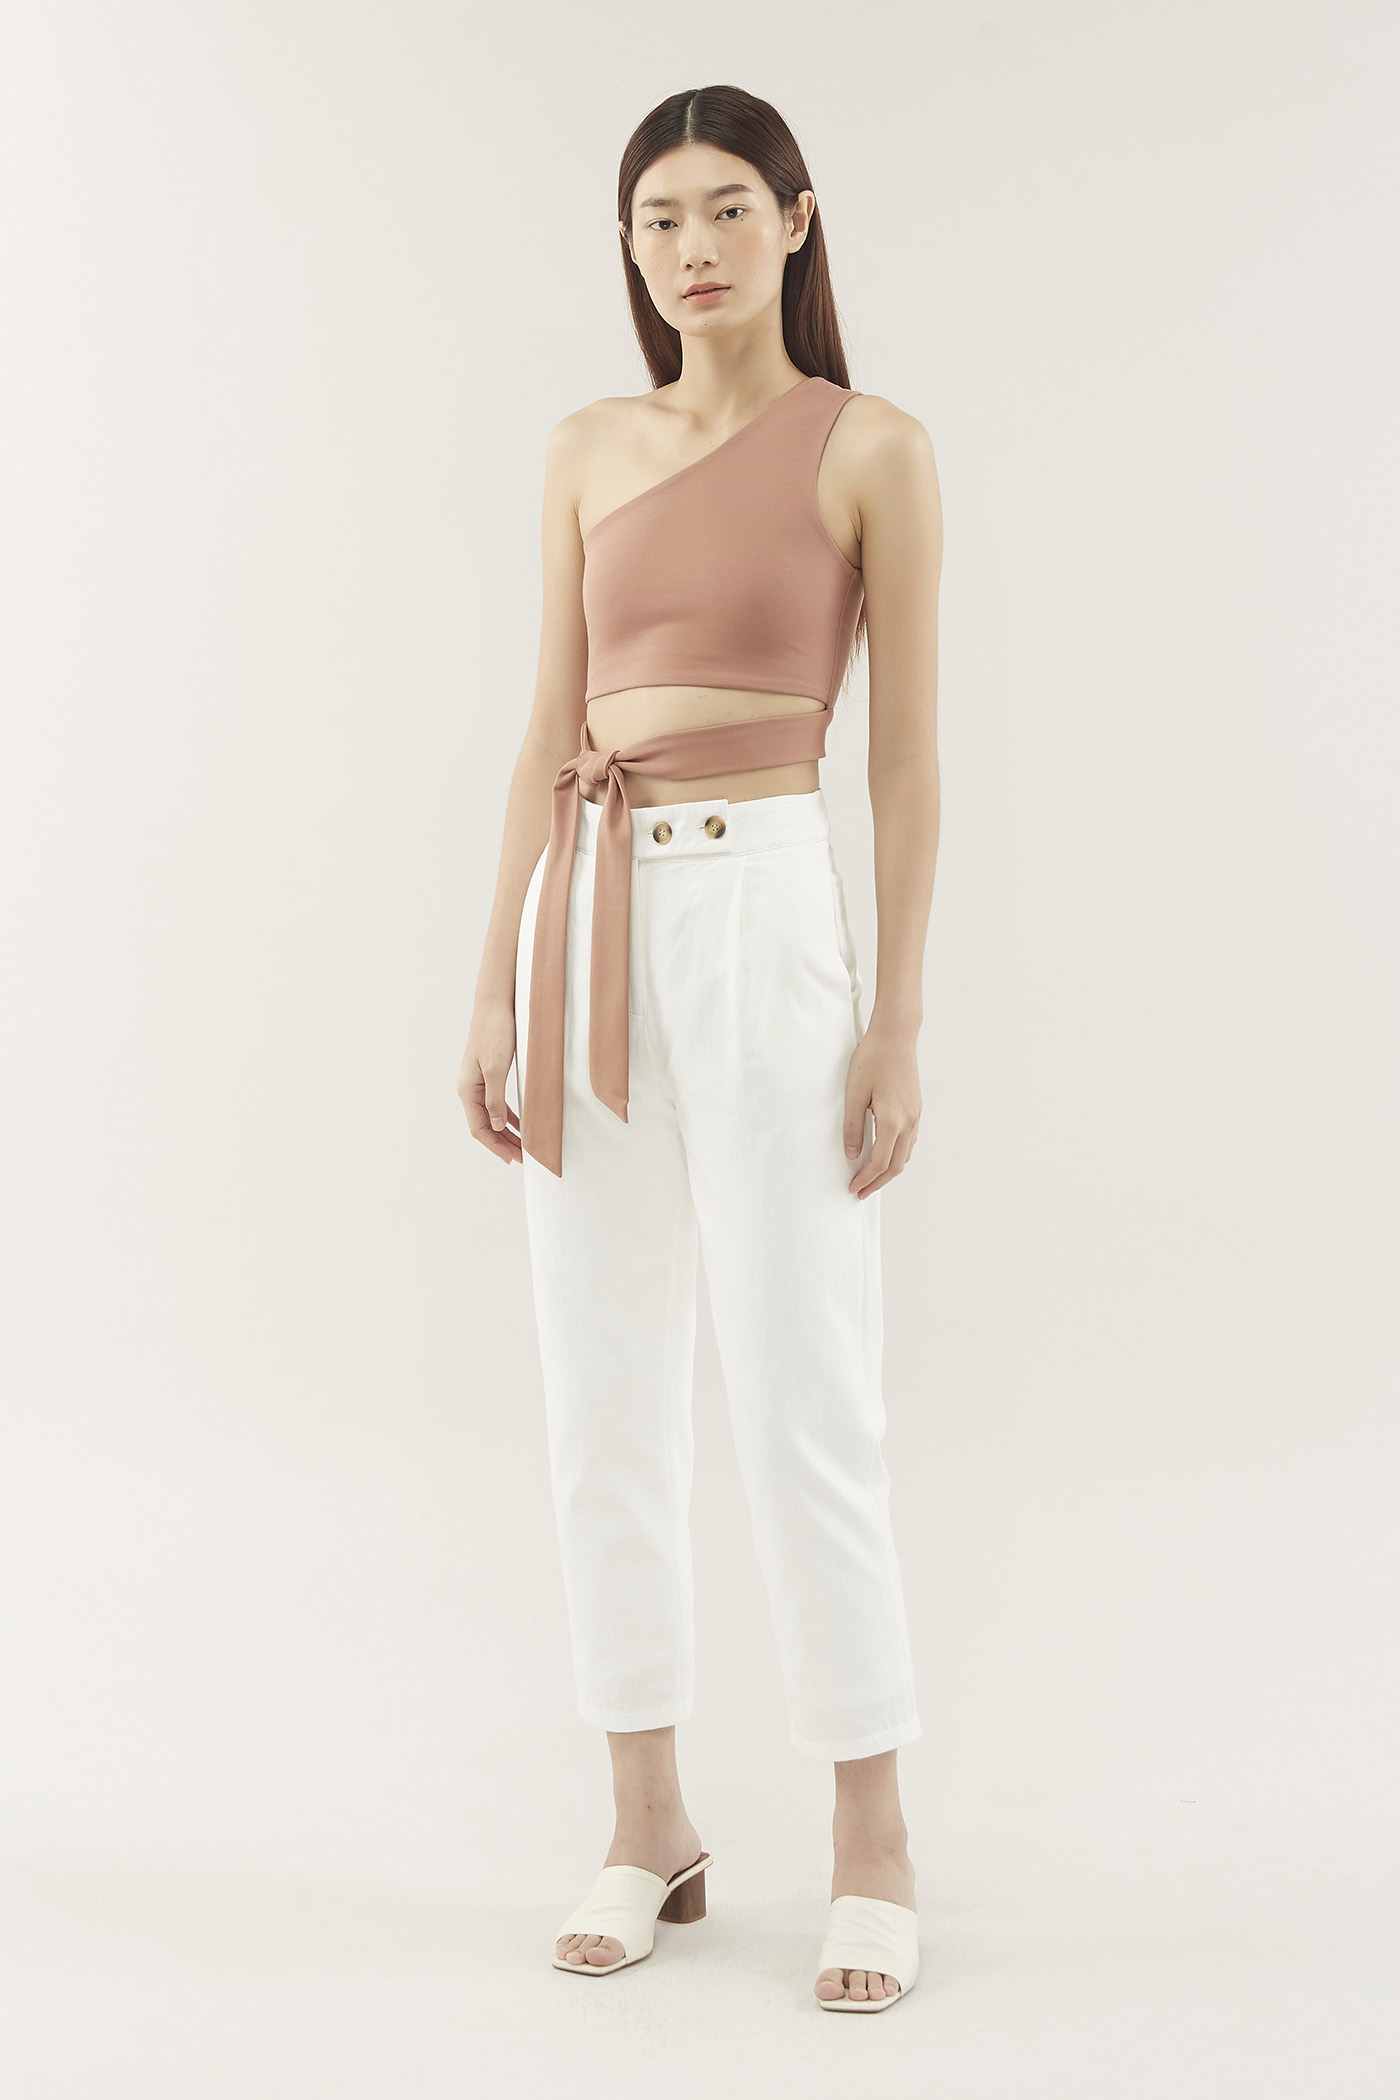 Lavalle Toga Top